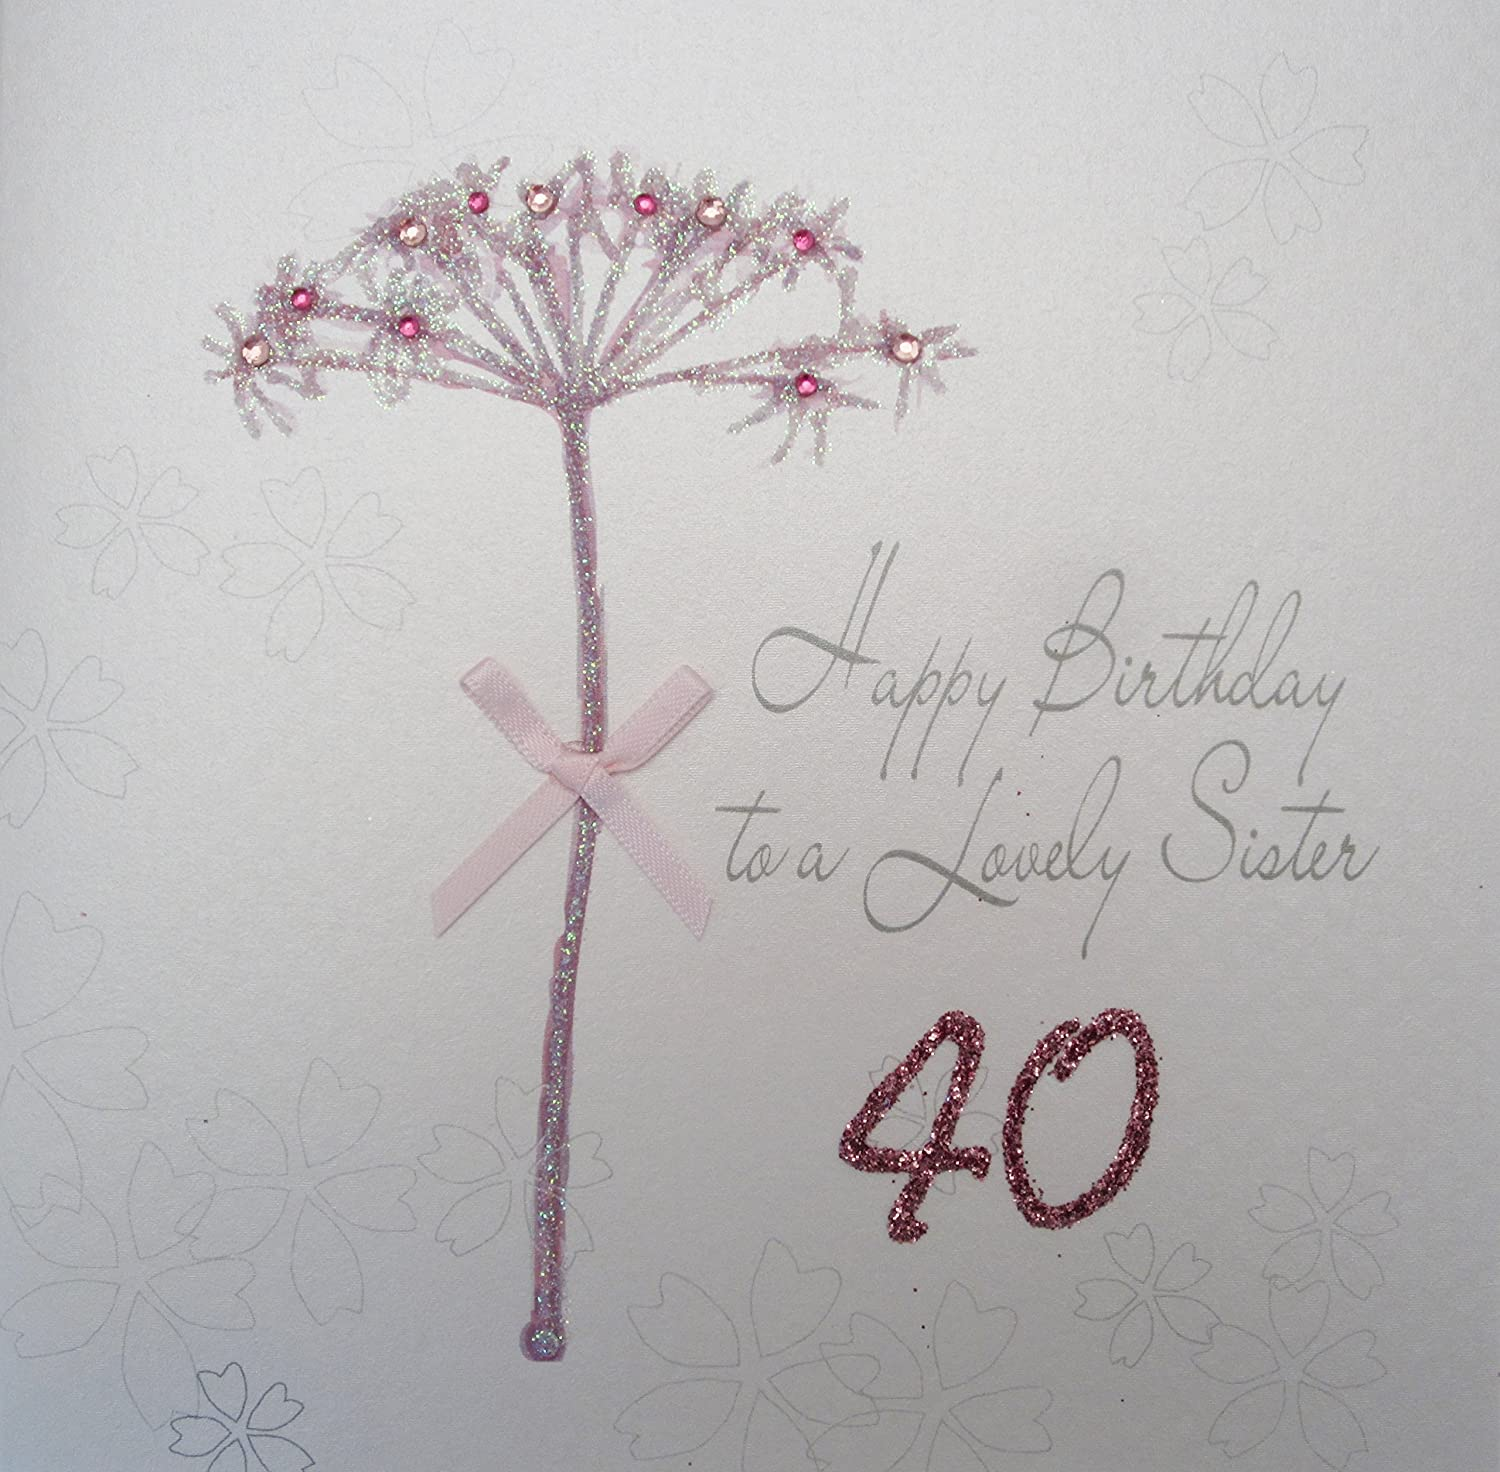 White cotton cards bd65 40 dandelion happy birthday to a lovely white cotton cards bd65 40 dandelion happy birthday to a lovely sister 40 handmade 40th birthday card white amazon kitchen home bookmarktalkfo